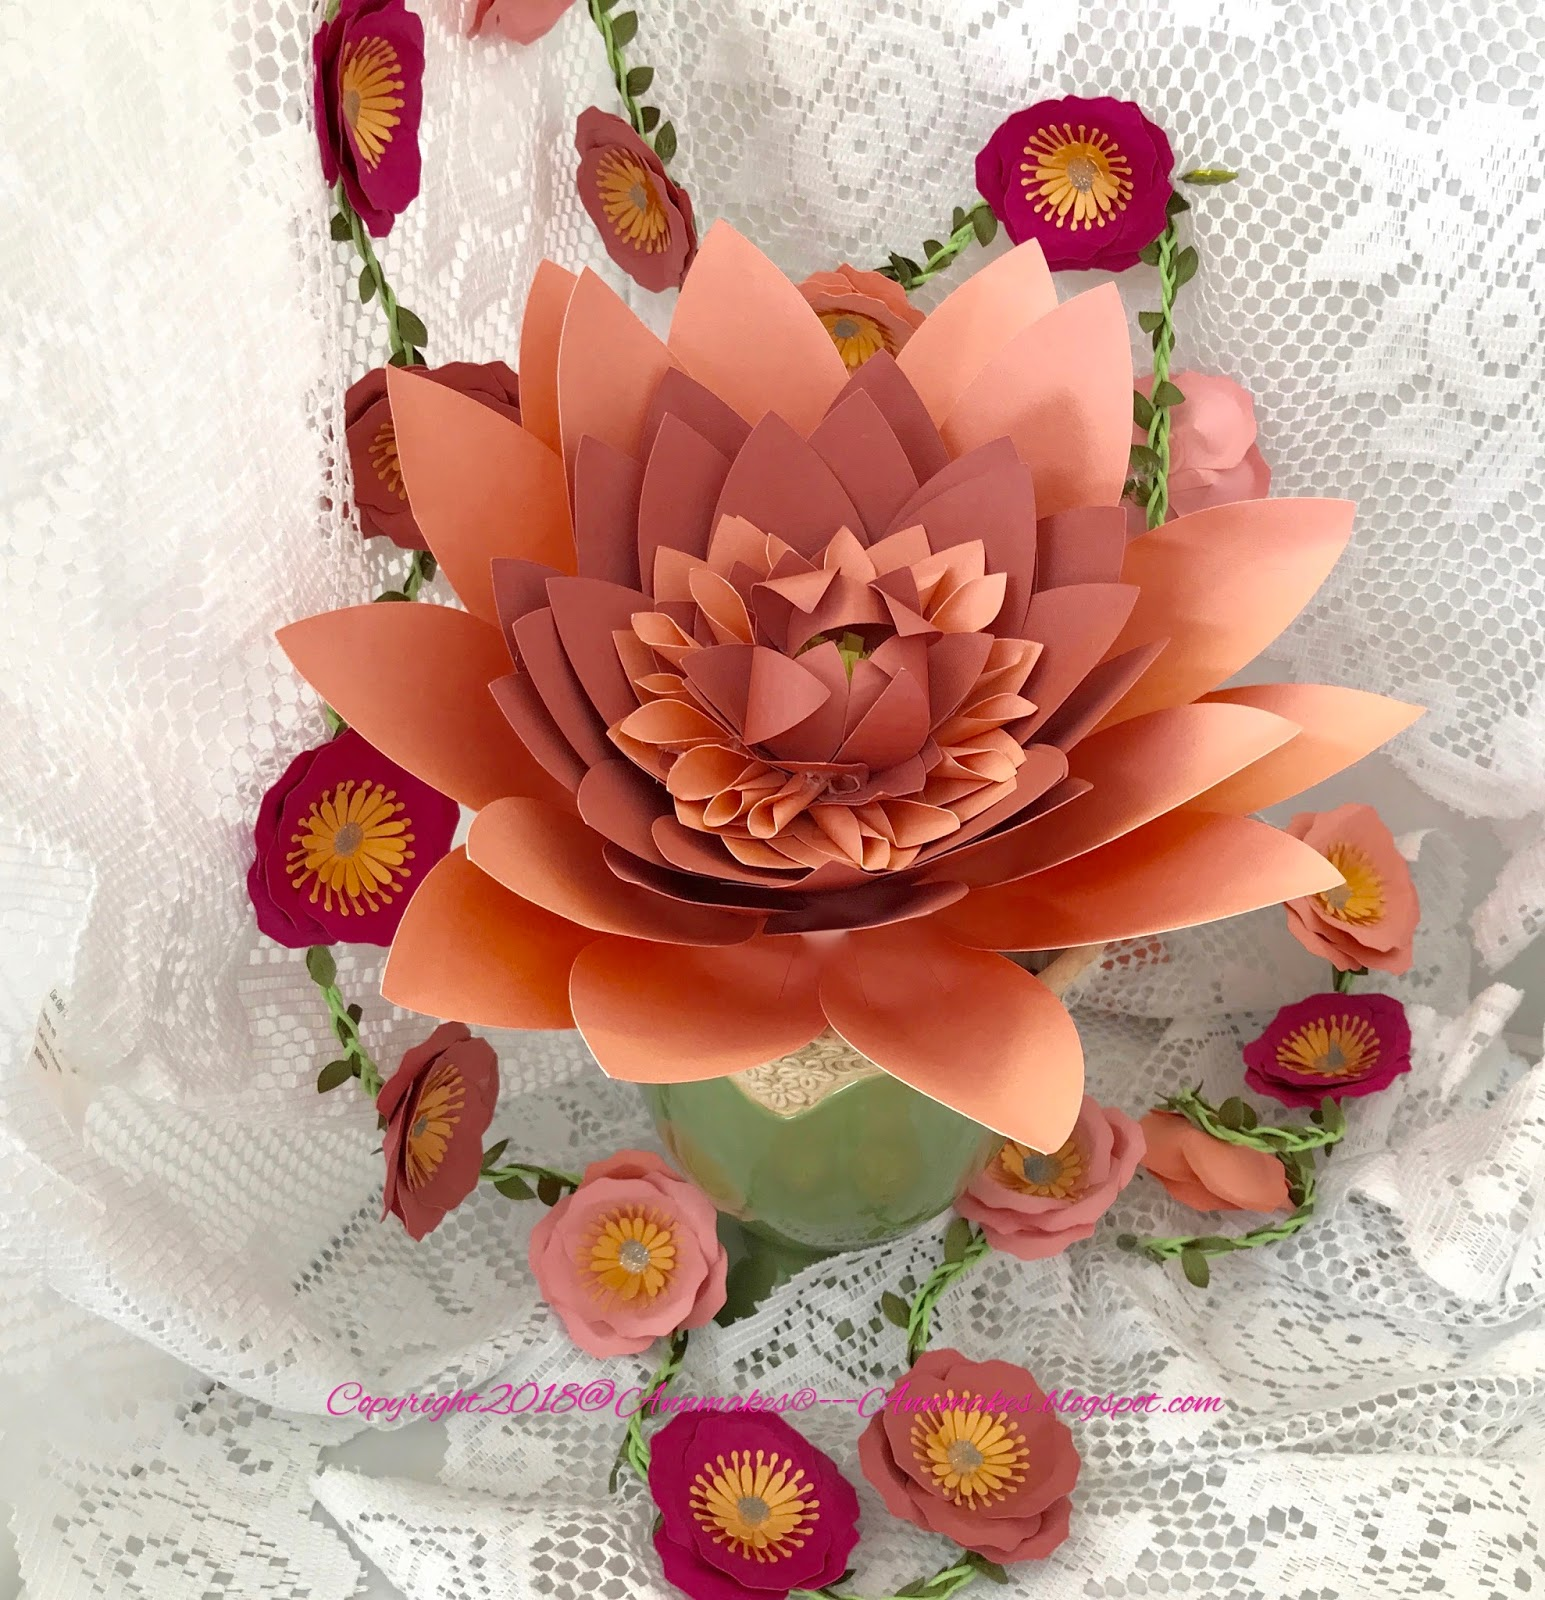 Annmakes pretty paper flowers with leisure arts cricut and testors one of the reasons being that there are projects with svg downloadable files to make paper flowers using the cricut maker mightylinksfo